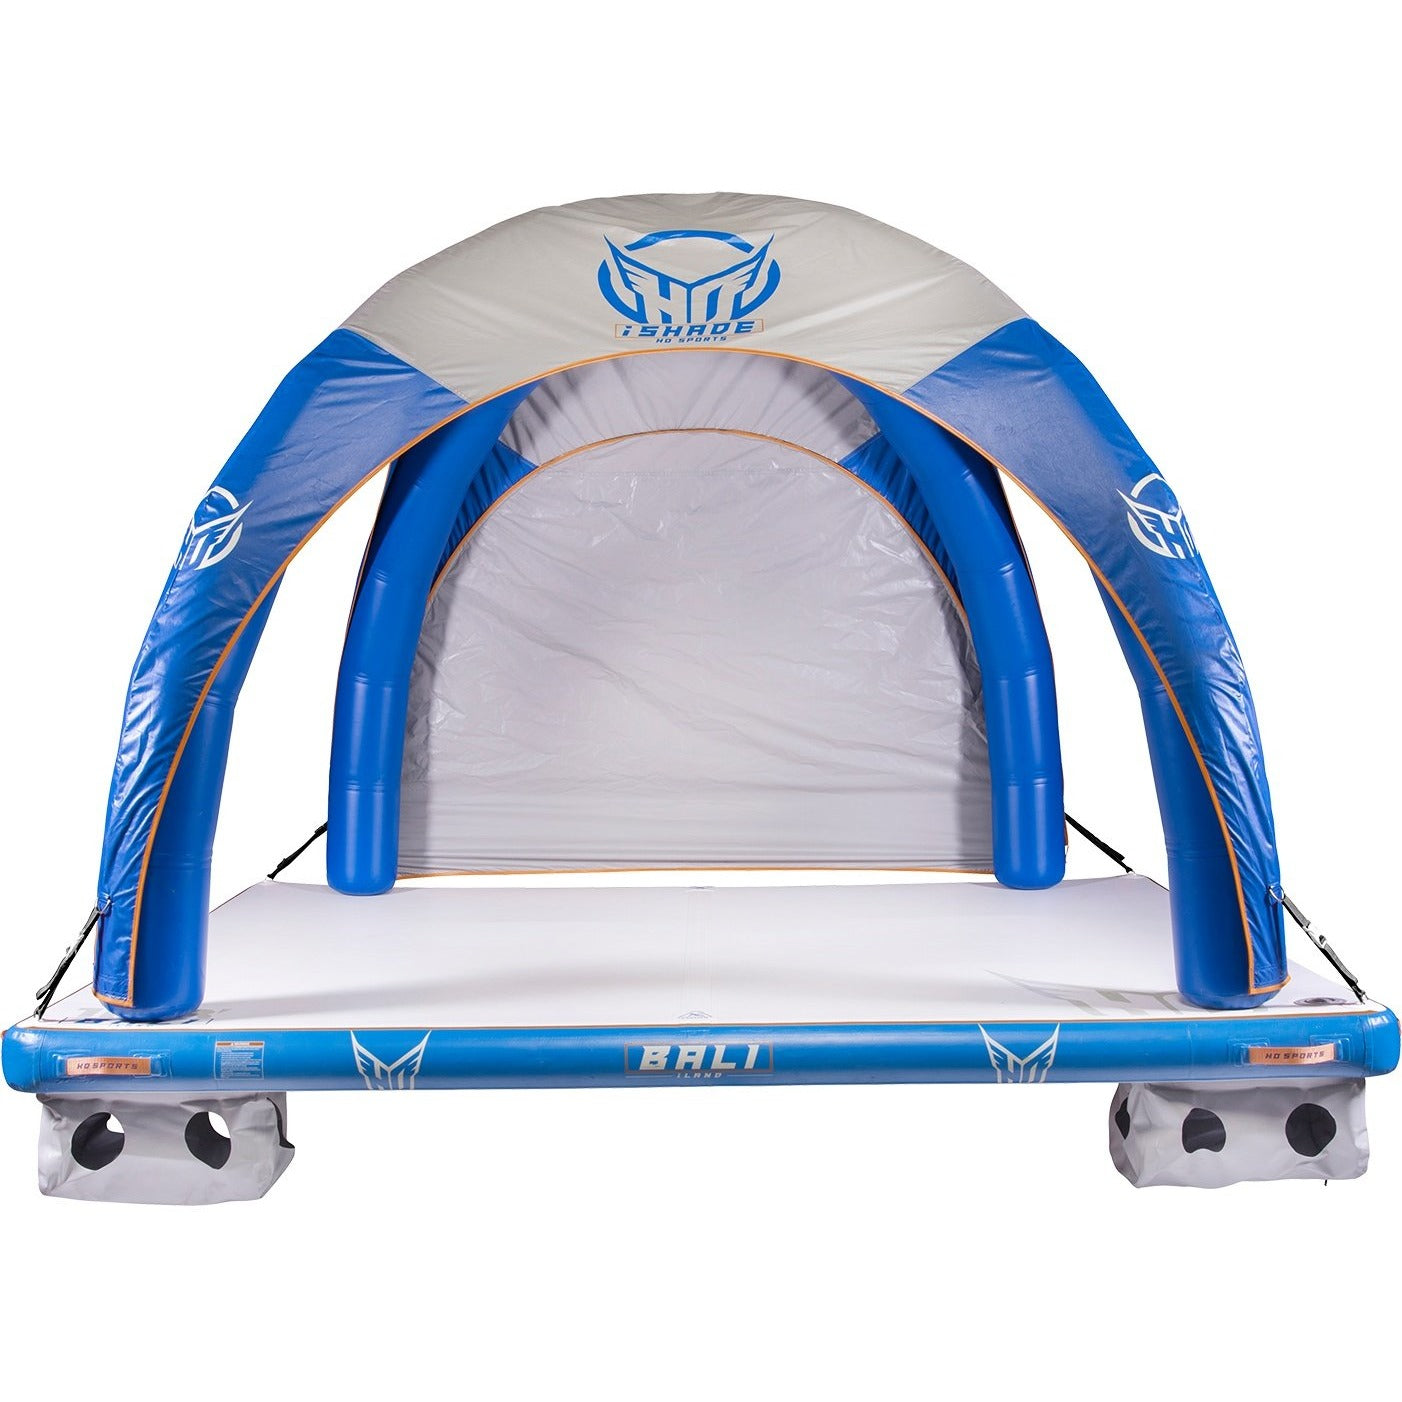 HO Sports iShade Inflatable Shade - 88 Gear